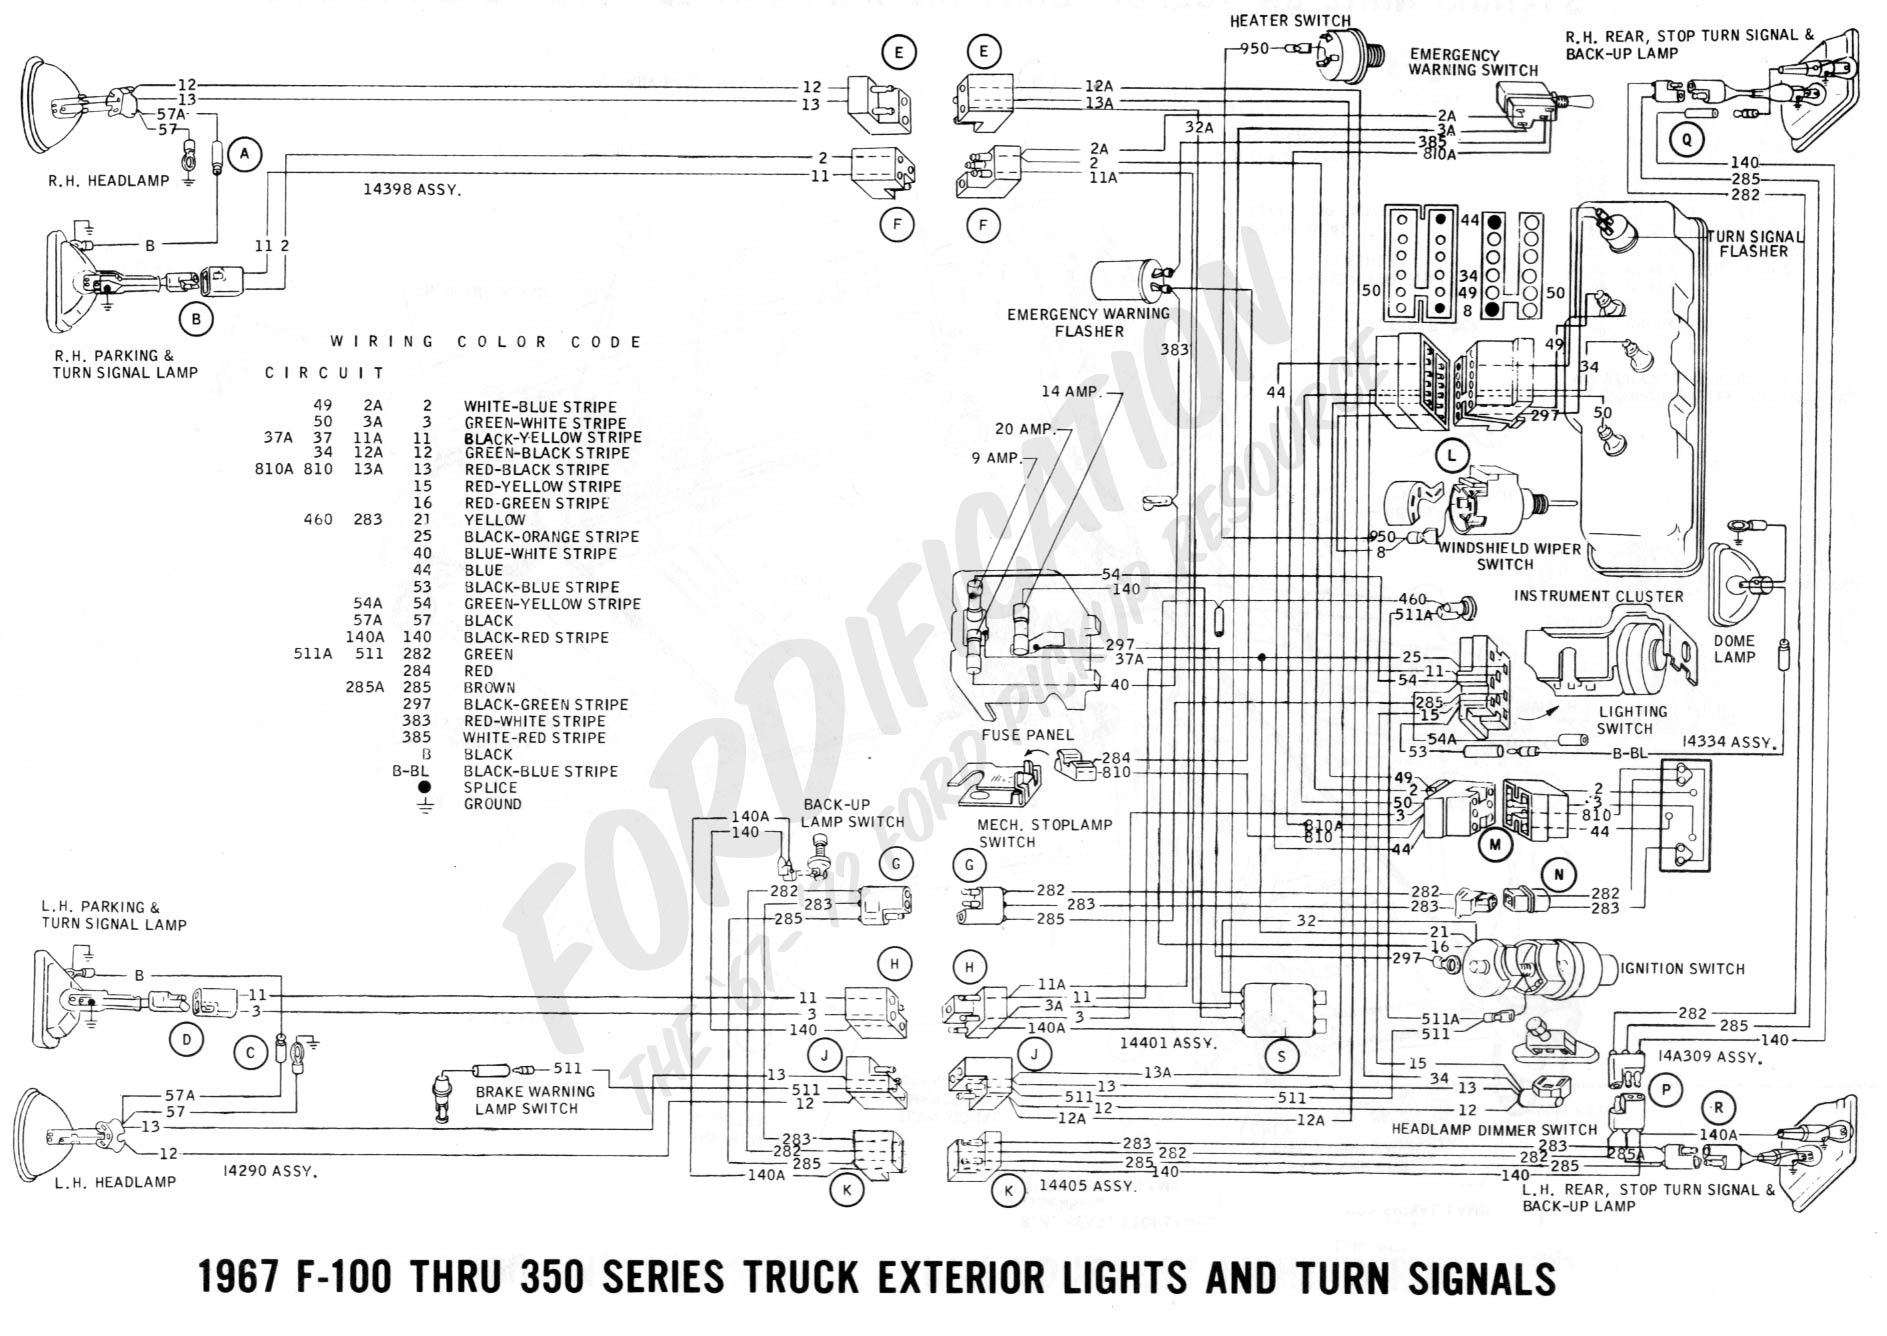 hight resolution of 1968 ford steering column wiring colors wiring diagram ford f100 steering column diagram furthermore 1970 ford f100 steering